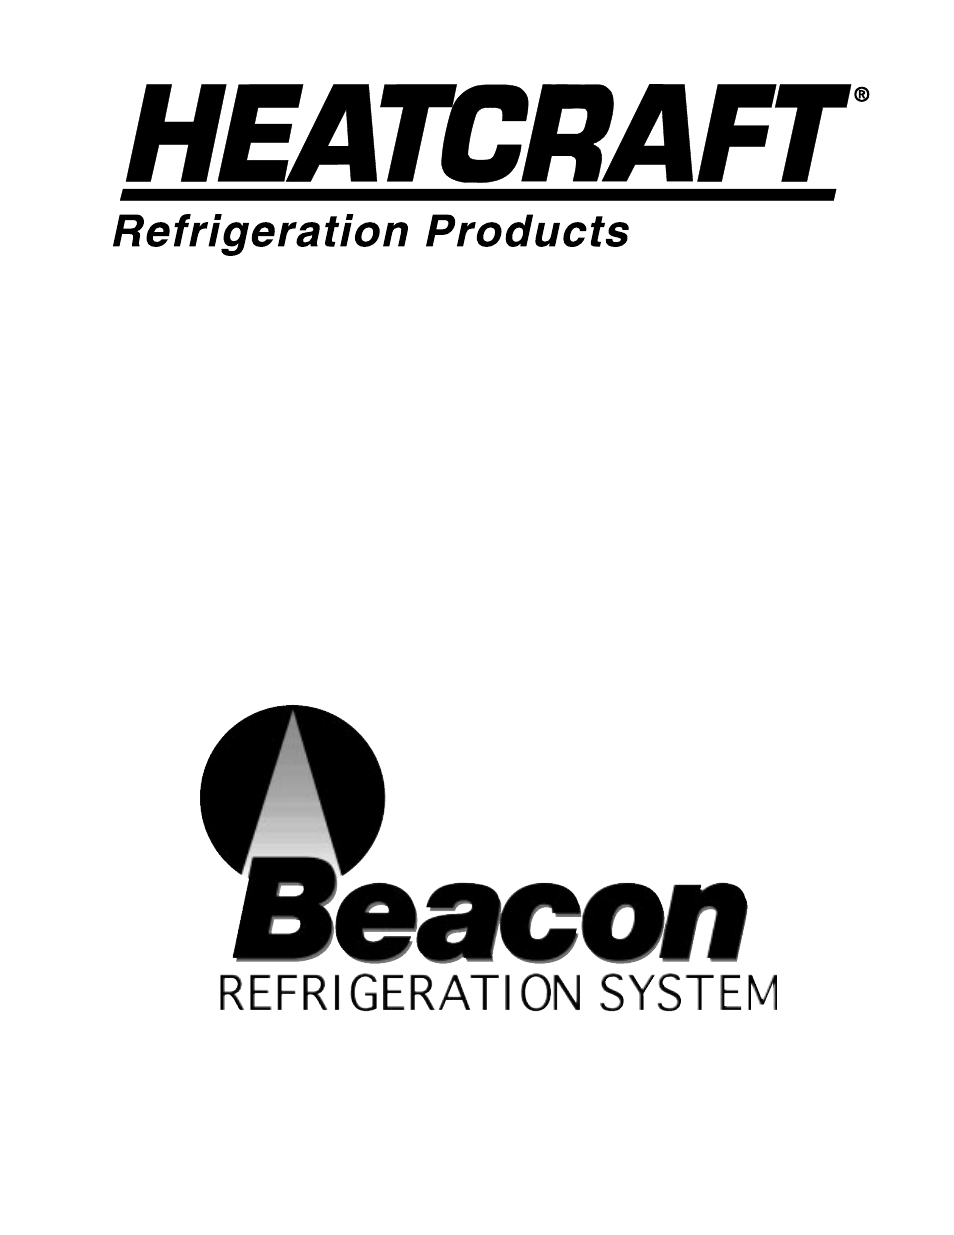 Heatcraft Refrigeration Products BEACON 25001501 User